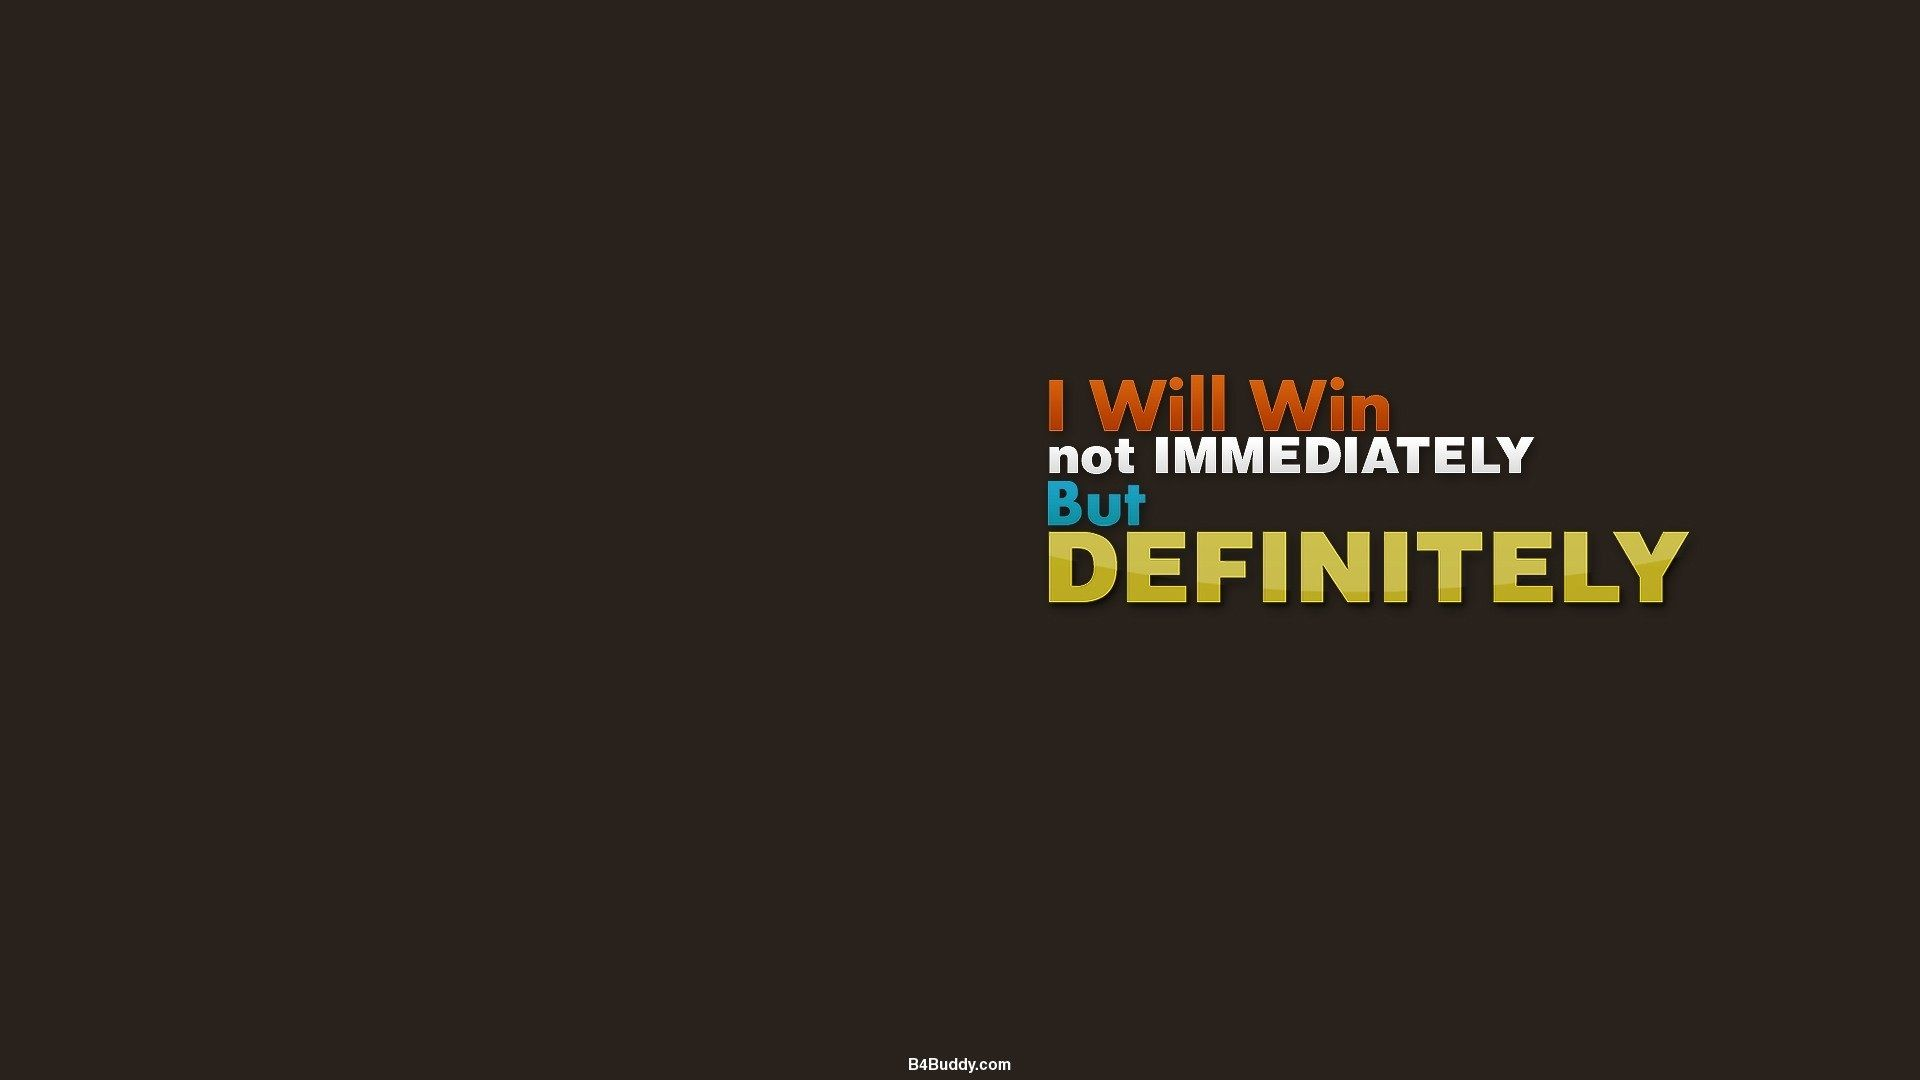 Work Quotes Wallpapers Top Free Work Quotes Backgrounds Wallpaperaccess